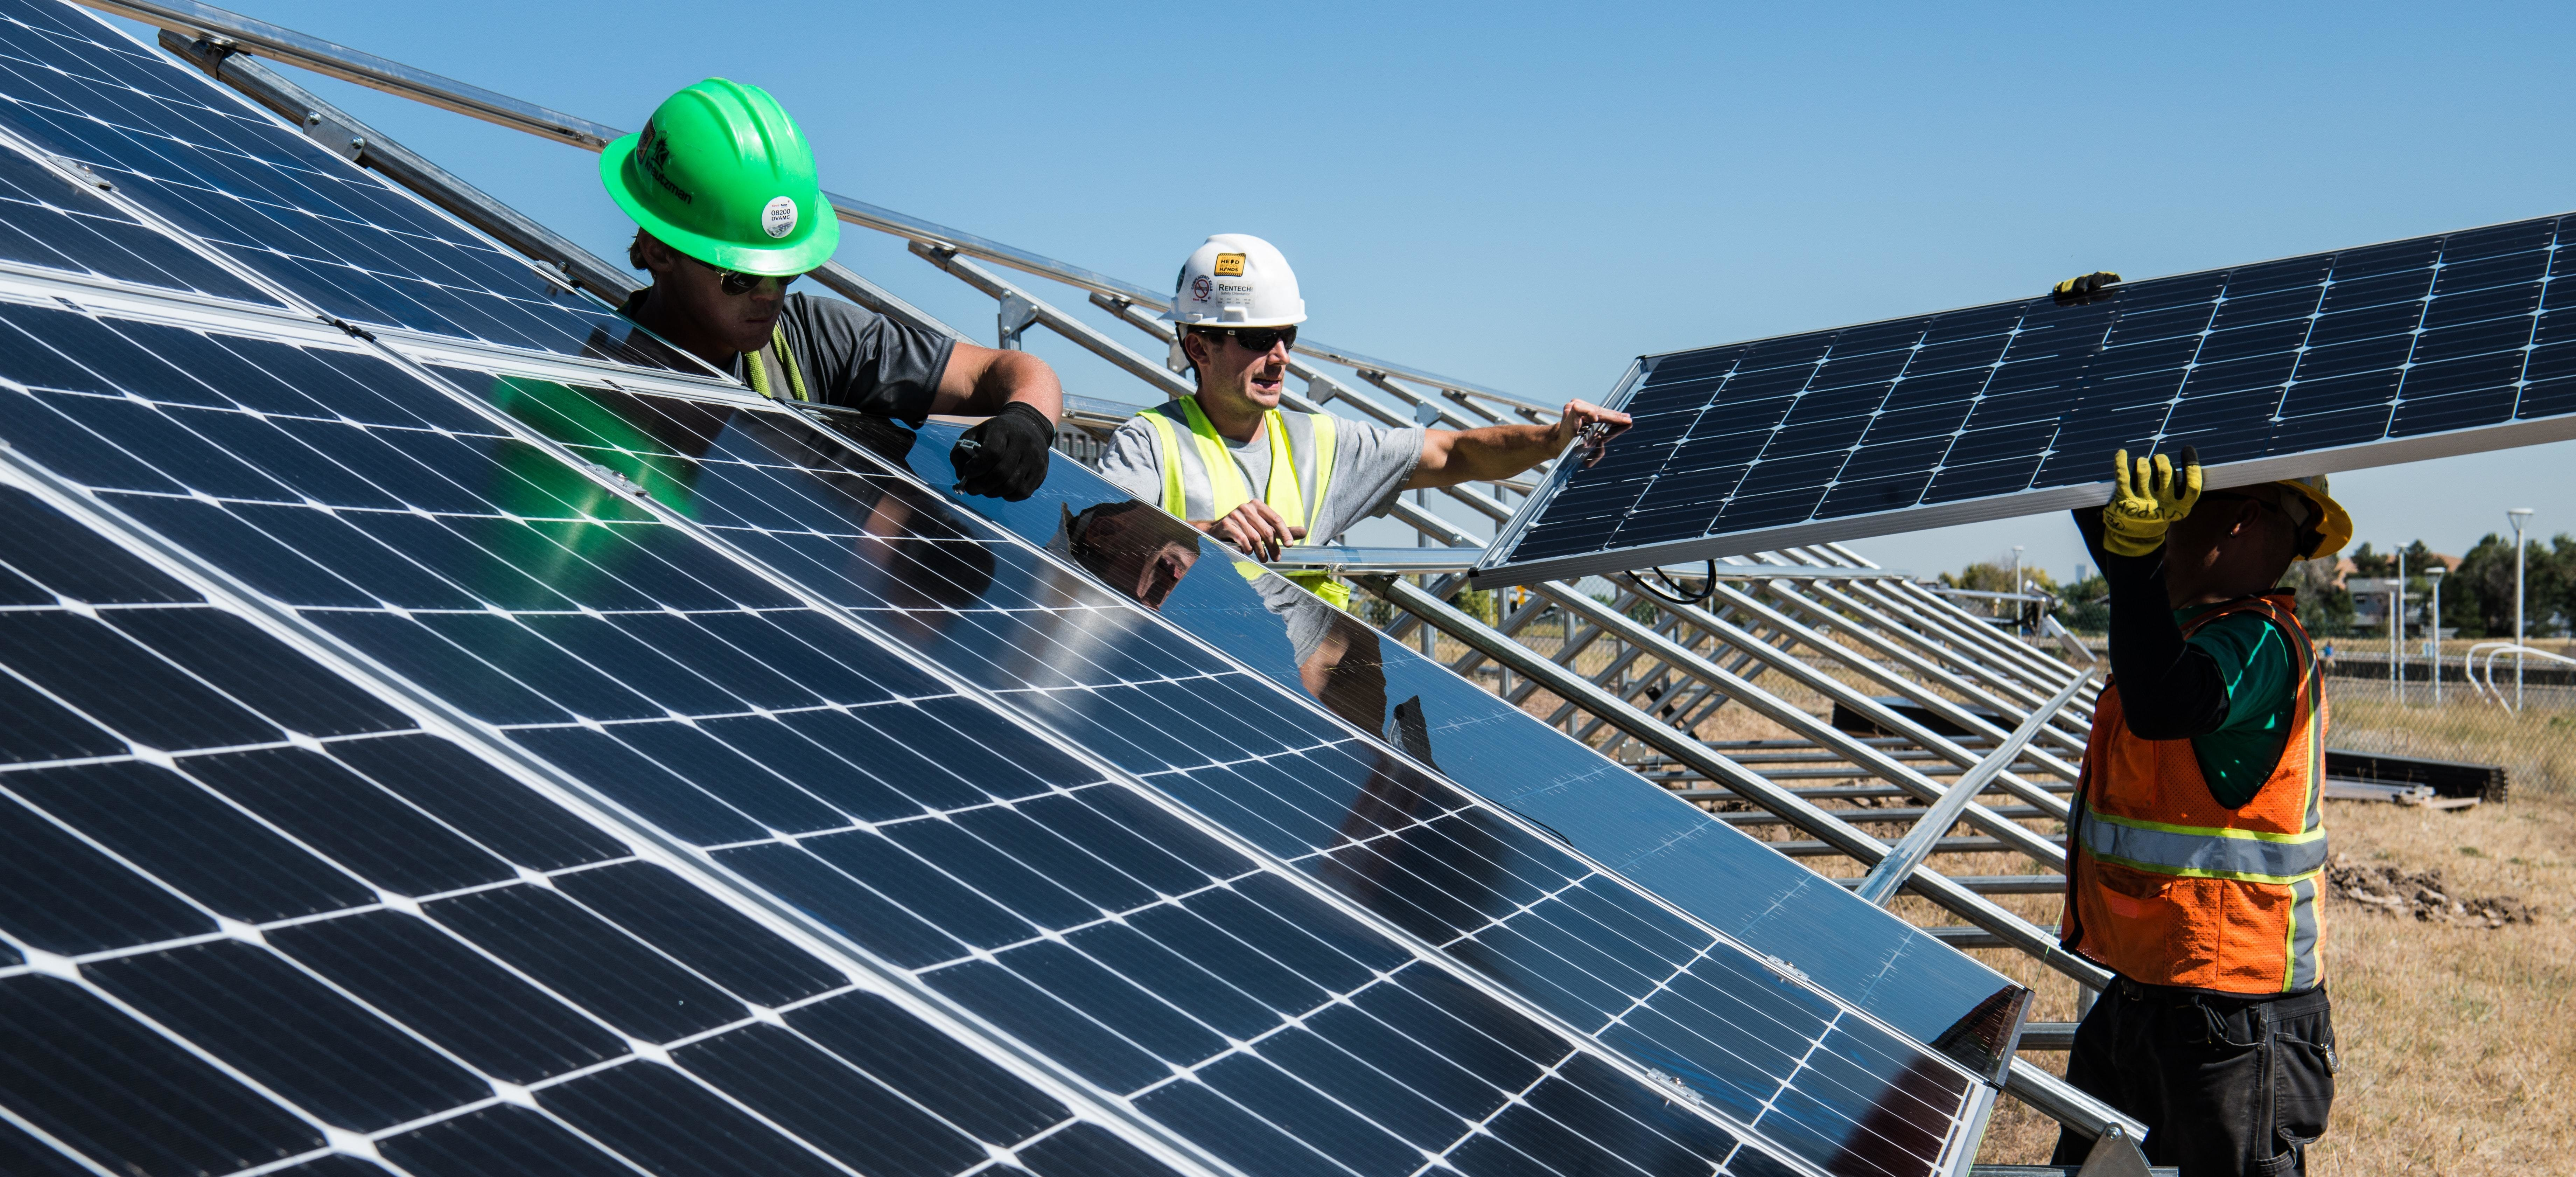 workers fit solar panels into an open field